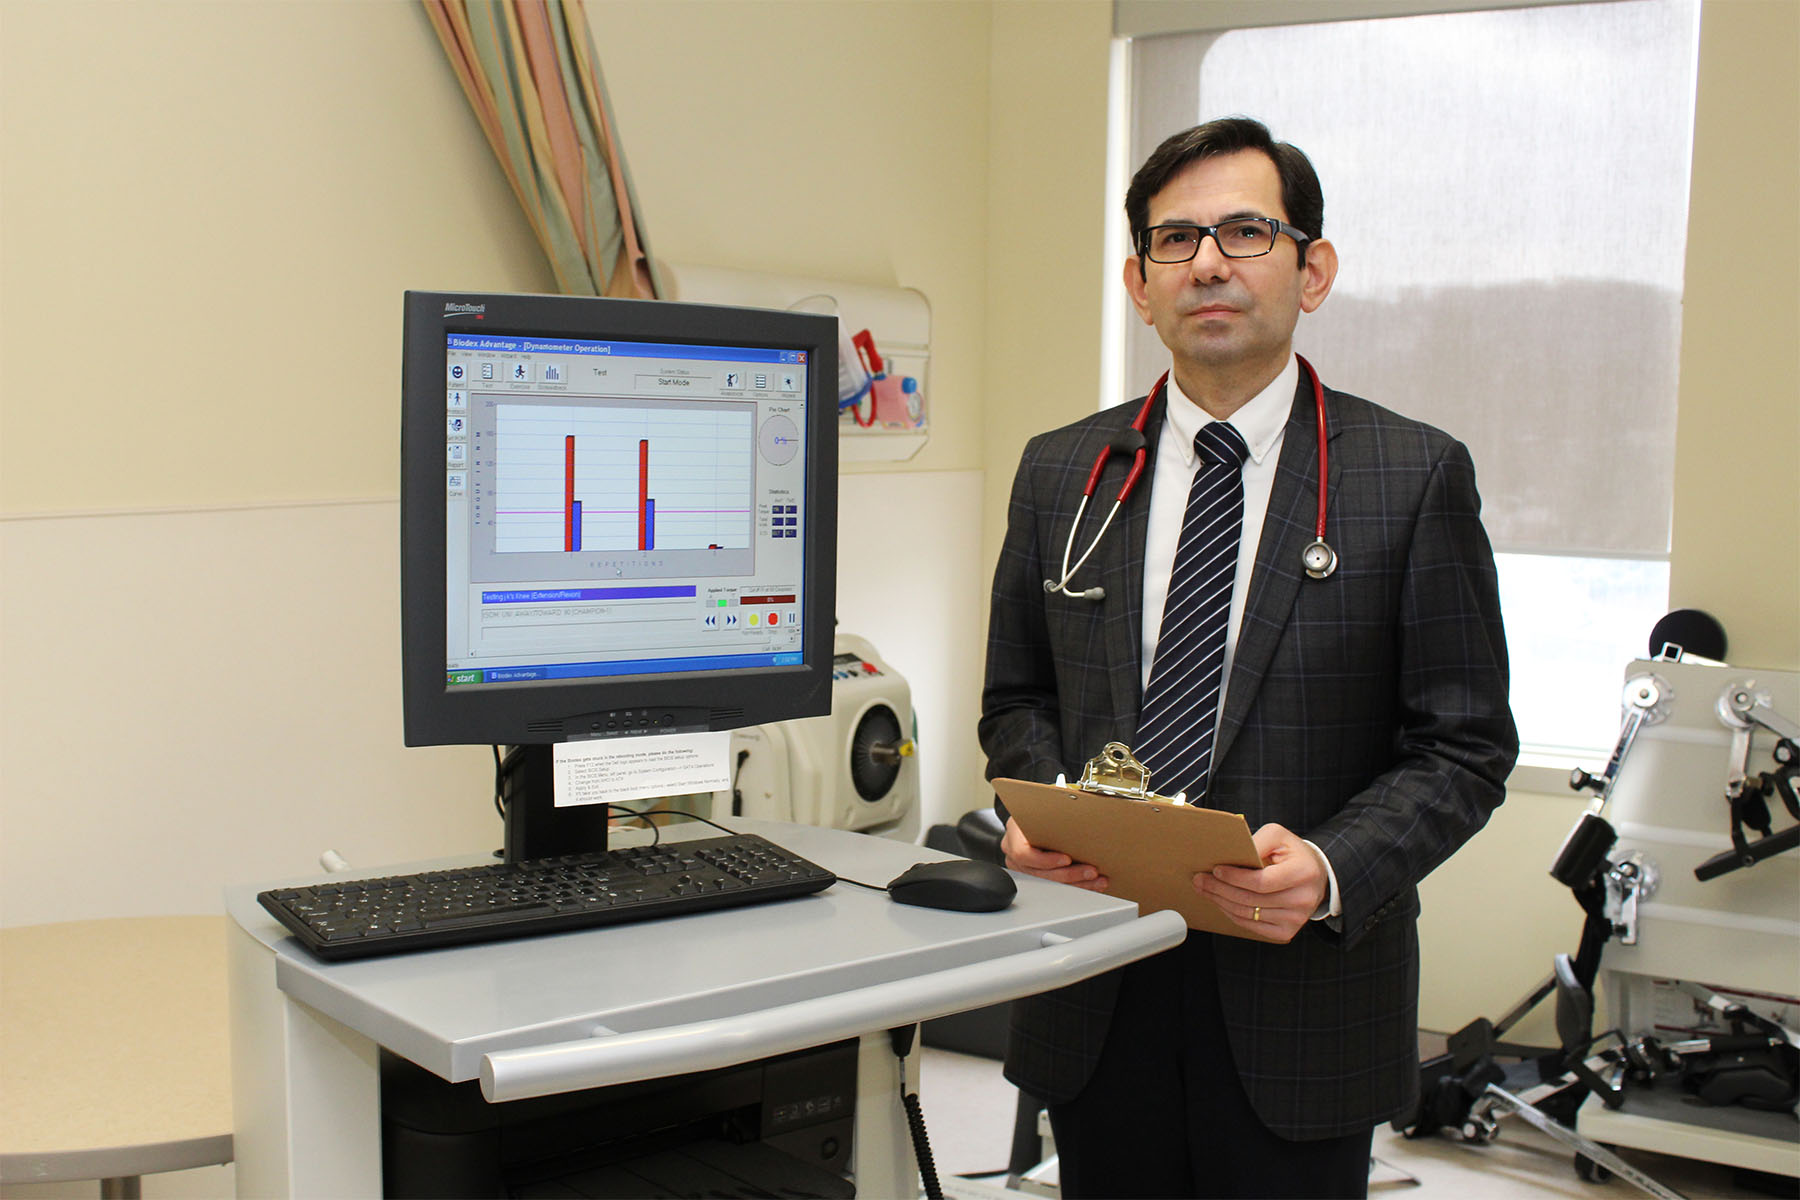 Dr. Samaan, a pediatric endocrinologist at McMaster Children's Hospital